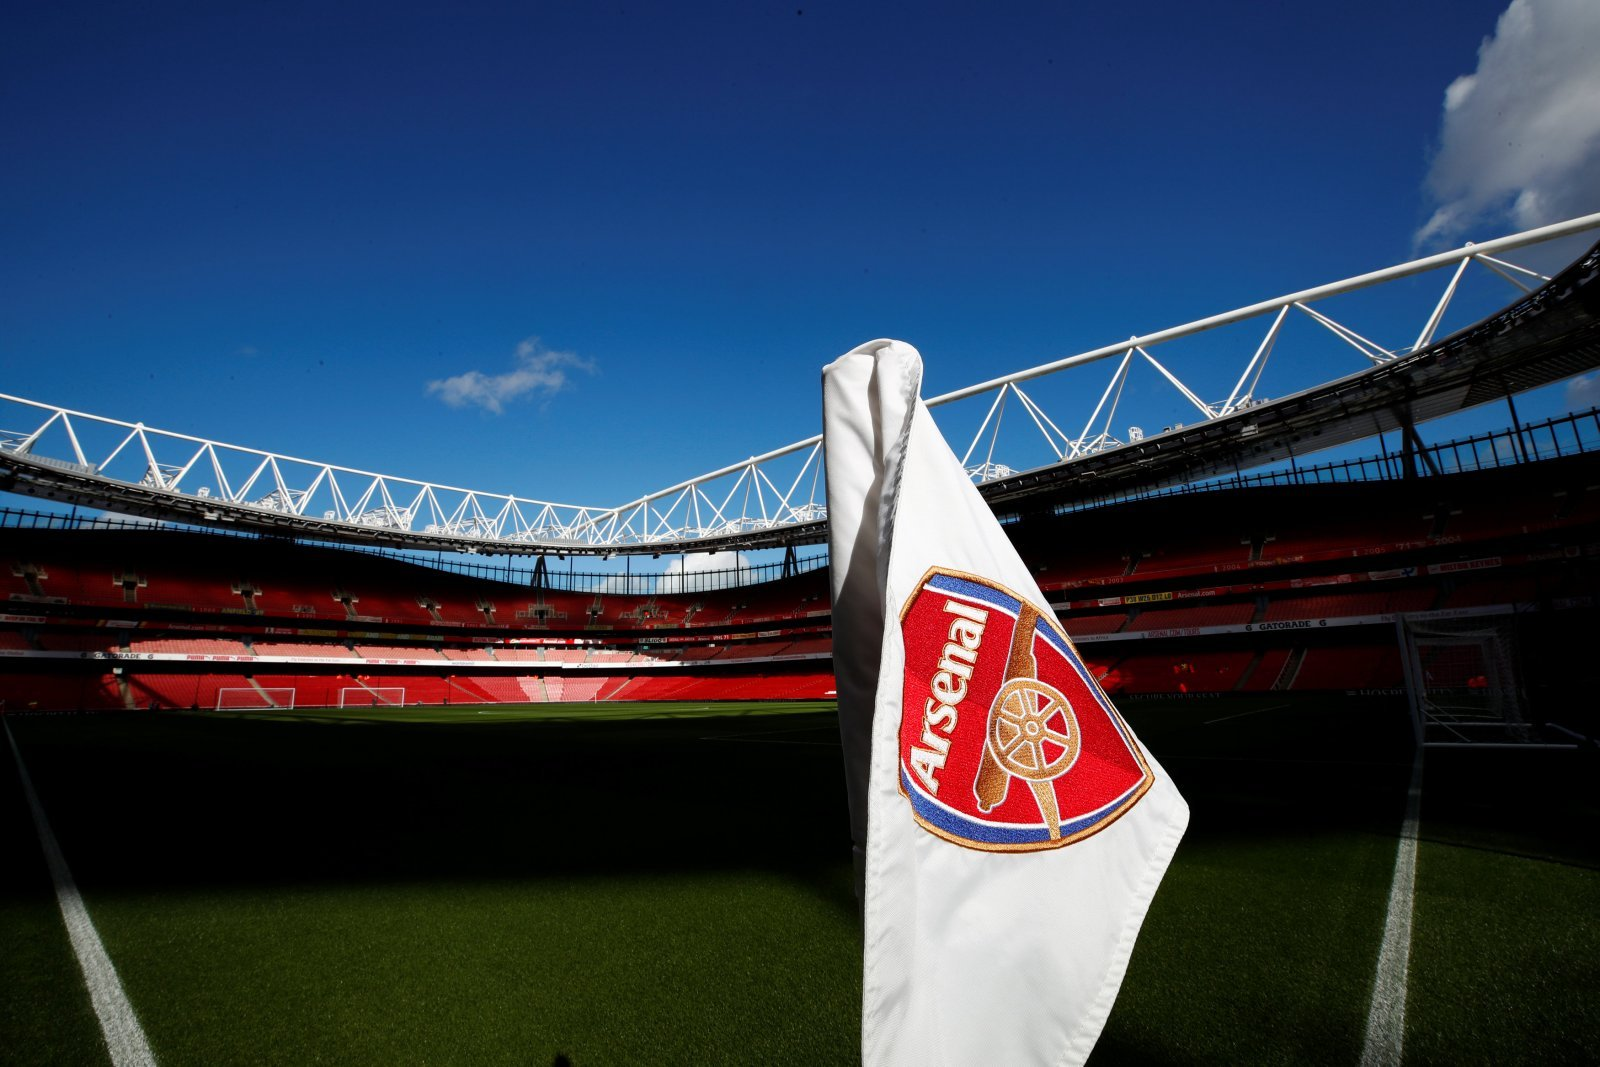 Arsenal: Signing Brazilian 'wonderkid' shows they are still a desirable club